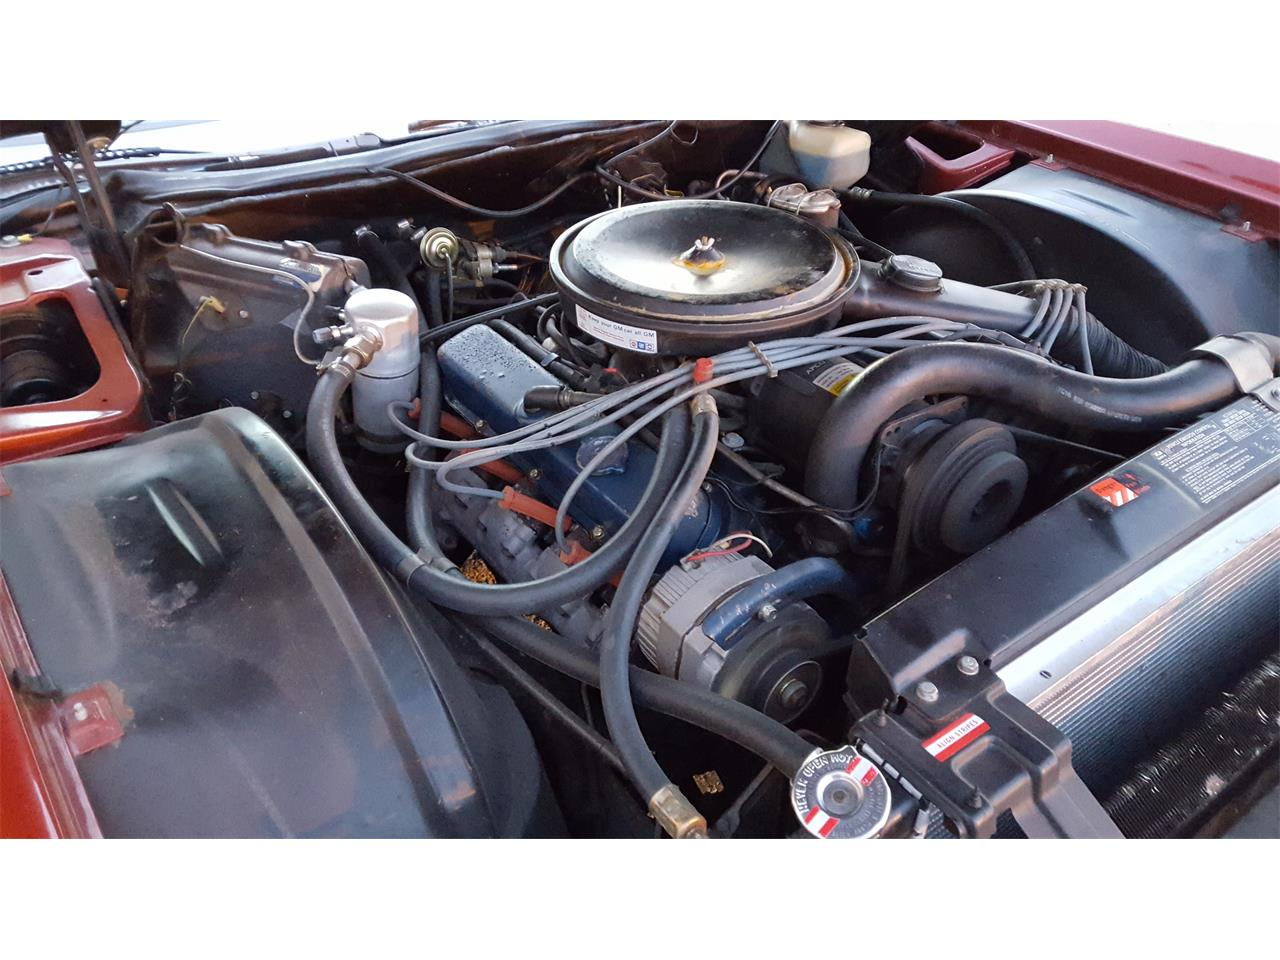 Large Picture of 1976 Cadillac Eldorado Offered by a Private Seller - GA9P